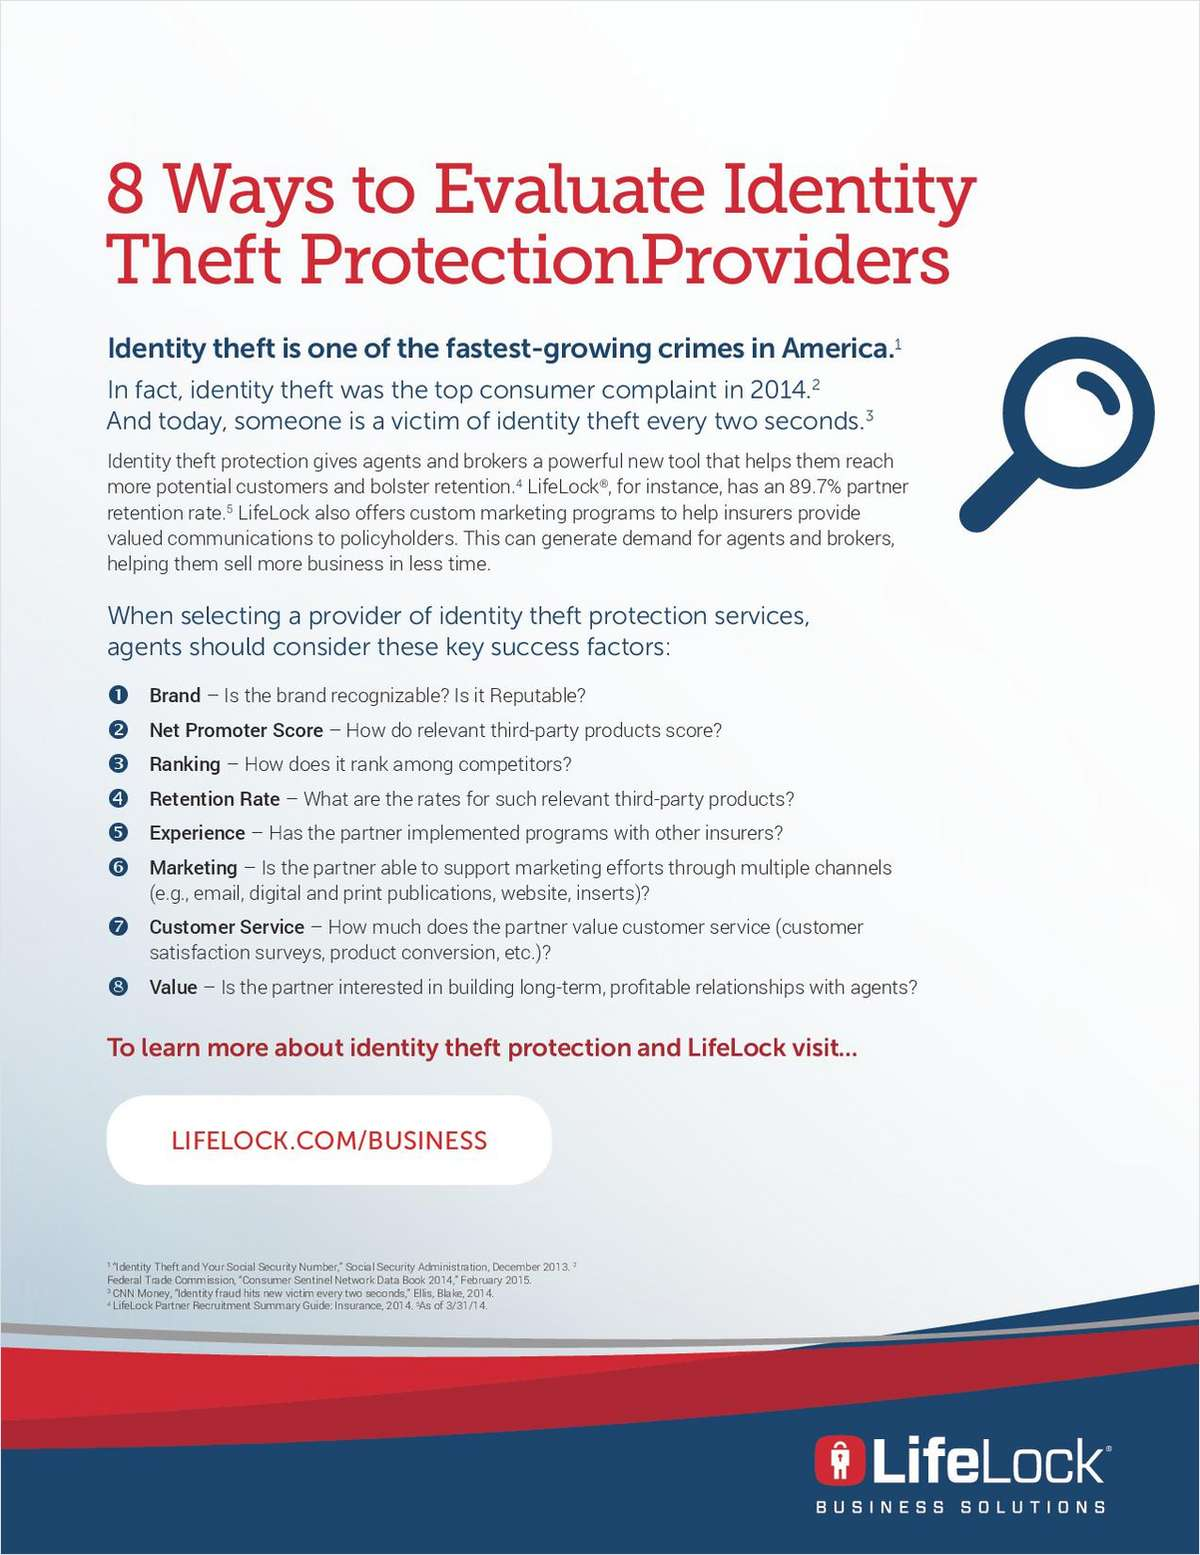 8 Ways to Evaluate Identity Theft Protection Providers